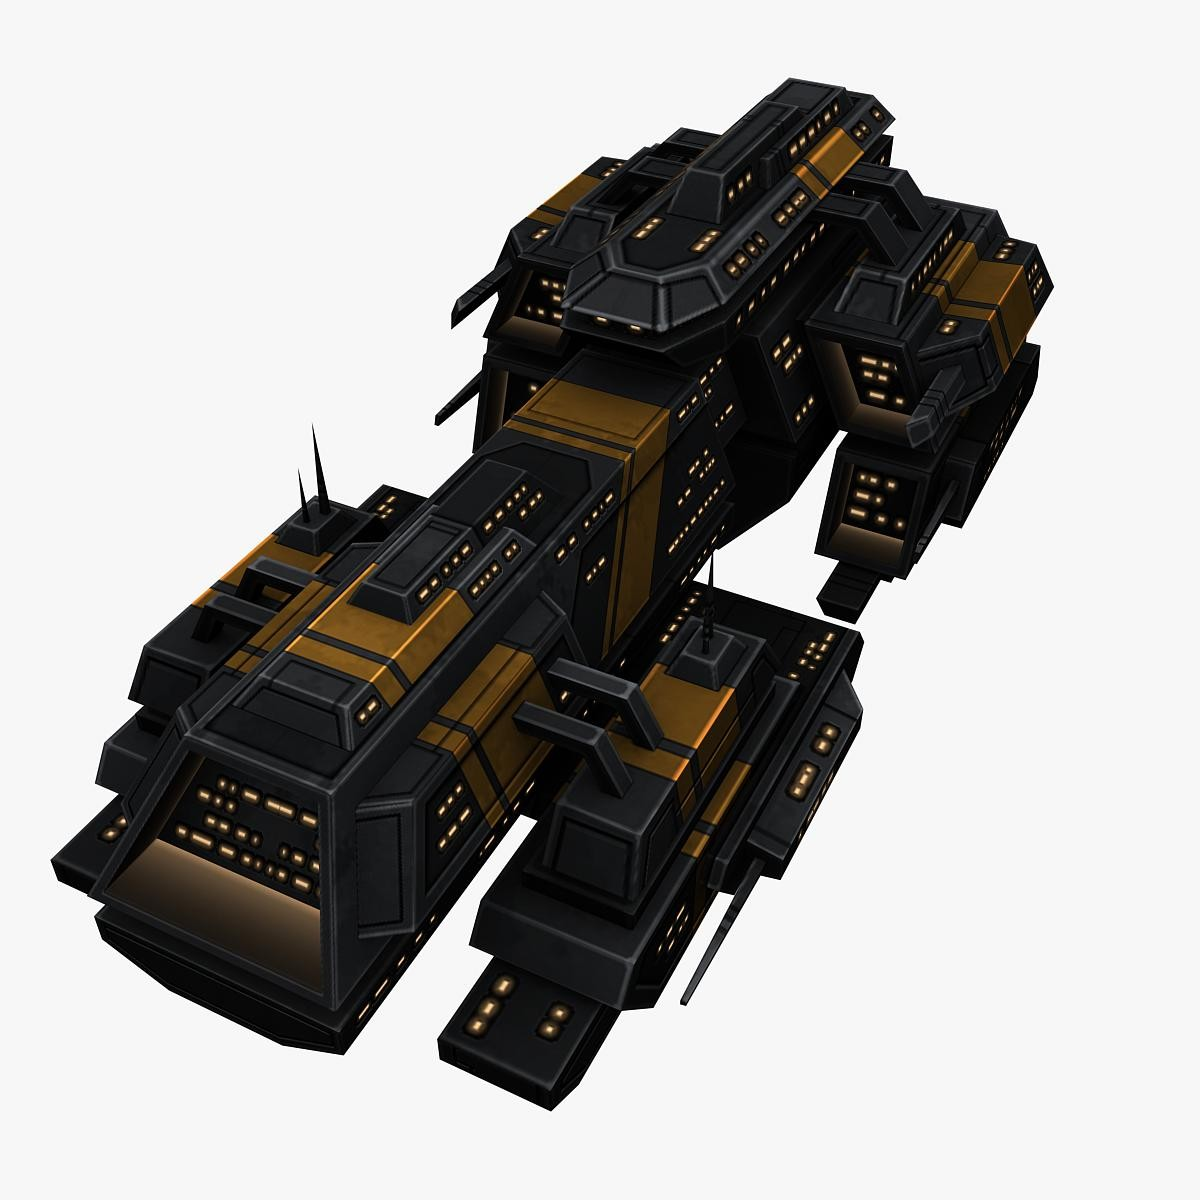 space_battleship_1_upgraded_preview_0.jpg